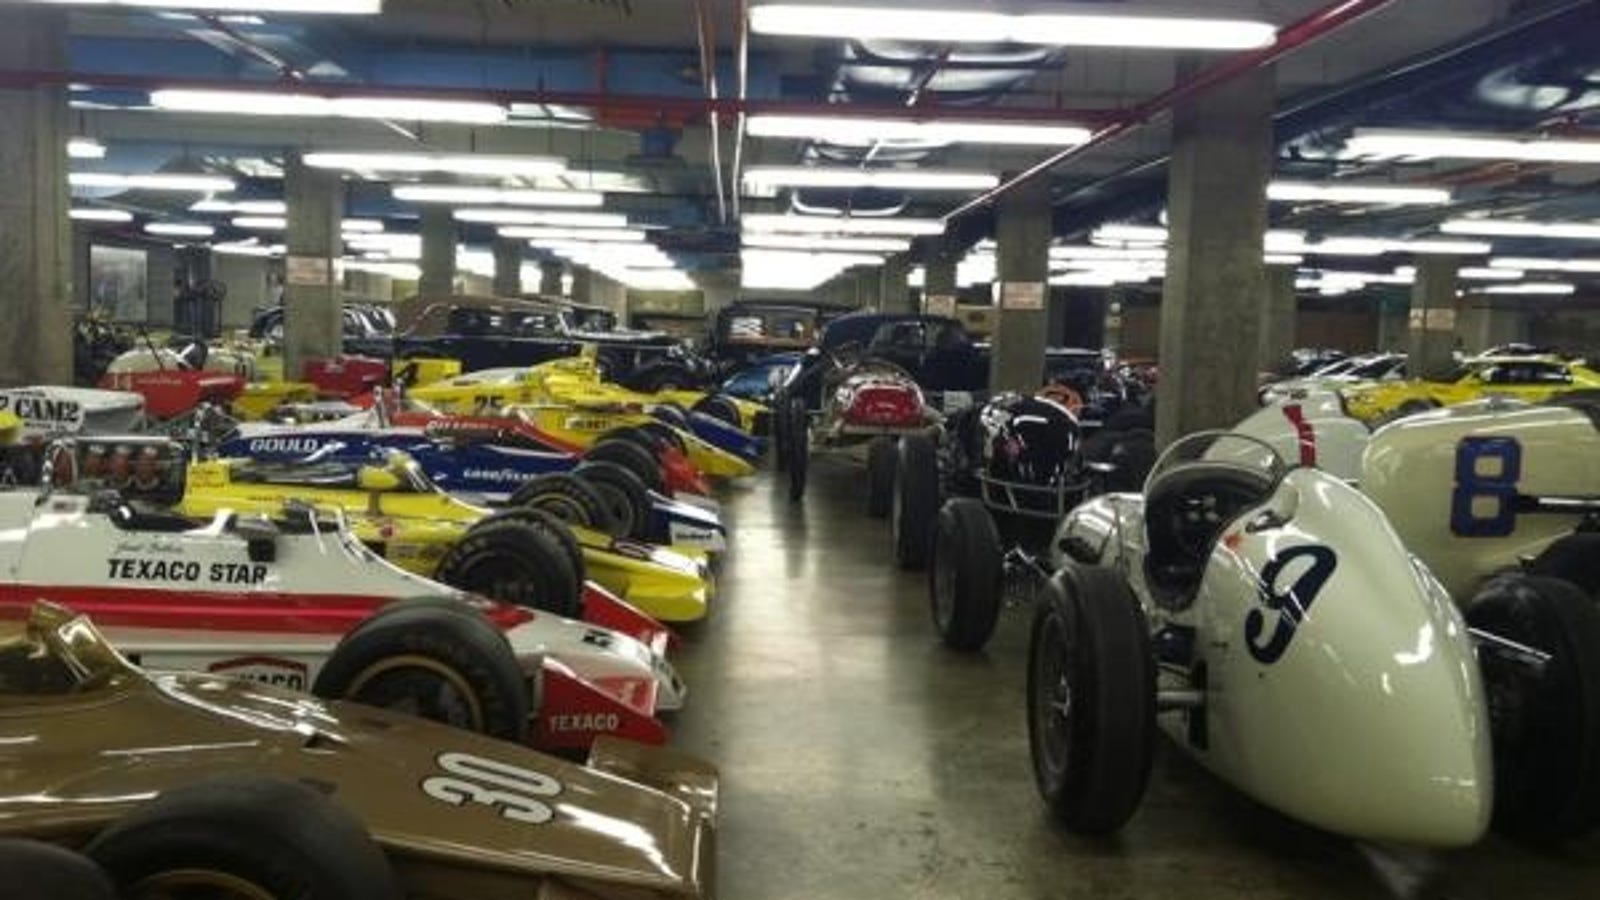 Progressive Near Me >> Indianapolis Motorspeedway Museum - The Basement